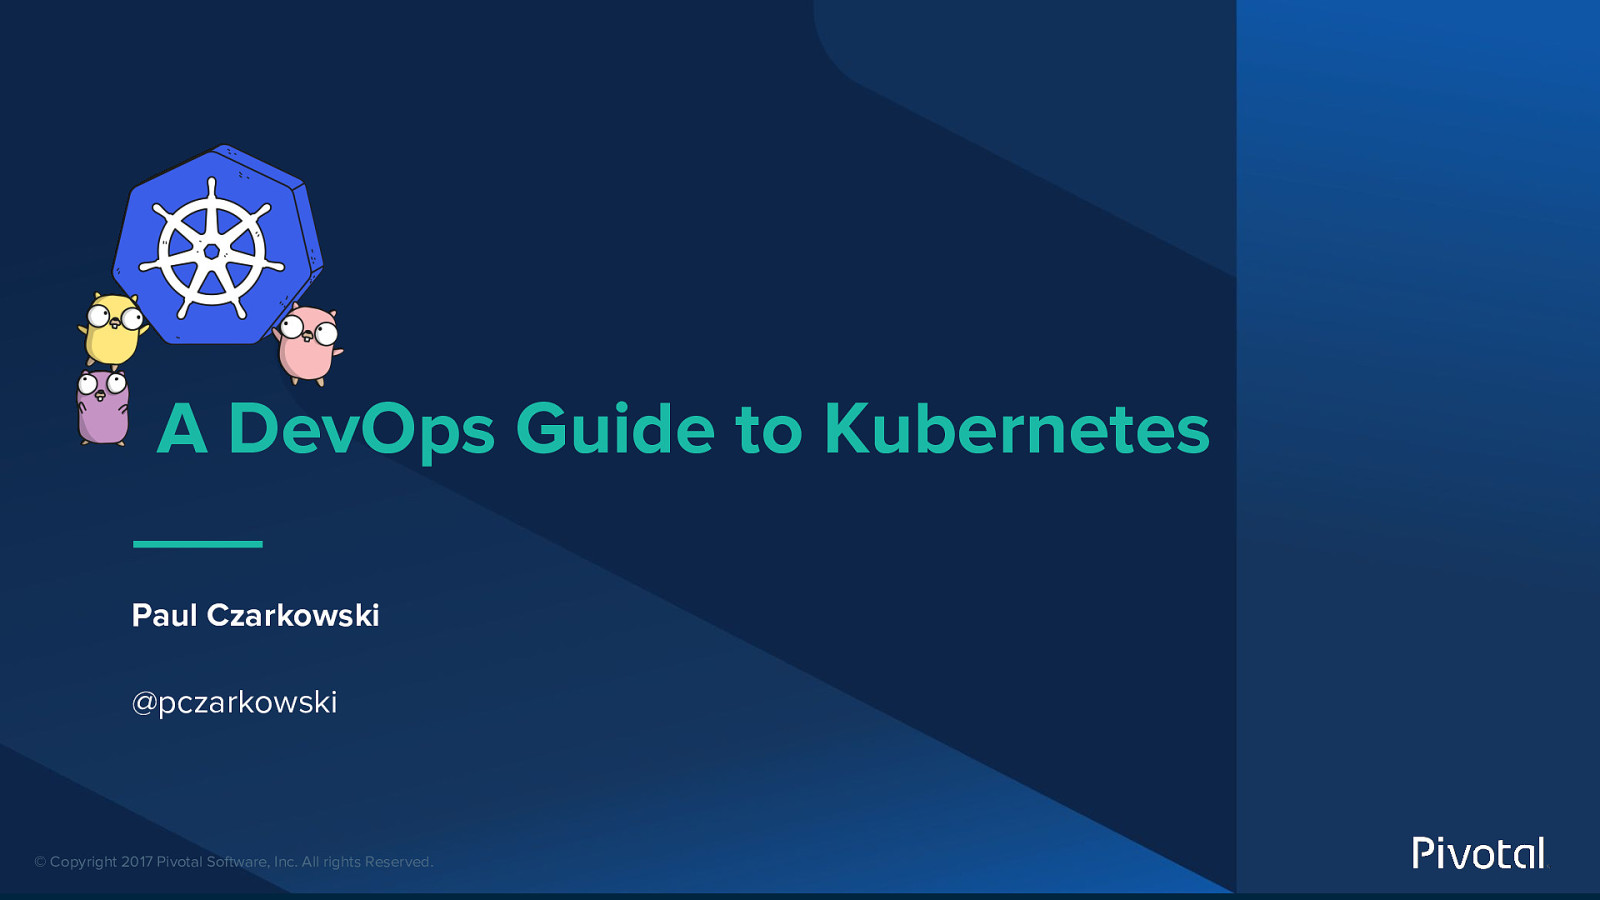 A DevOps Practitioner's Guide to Kubernetes